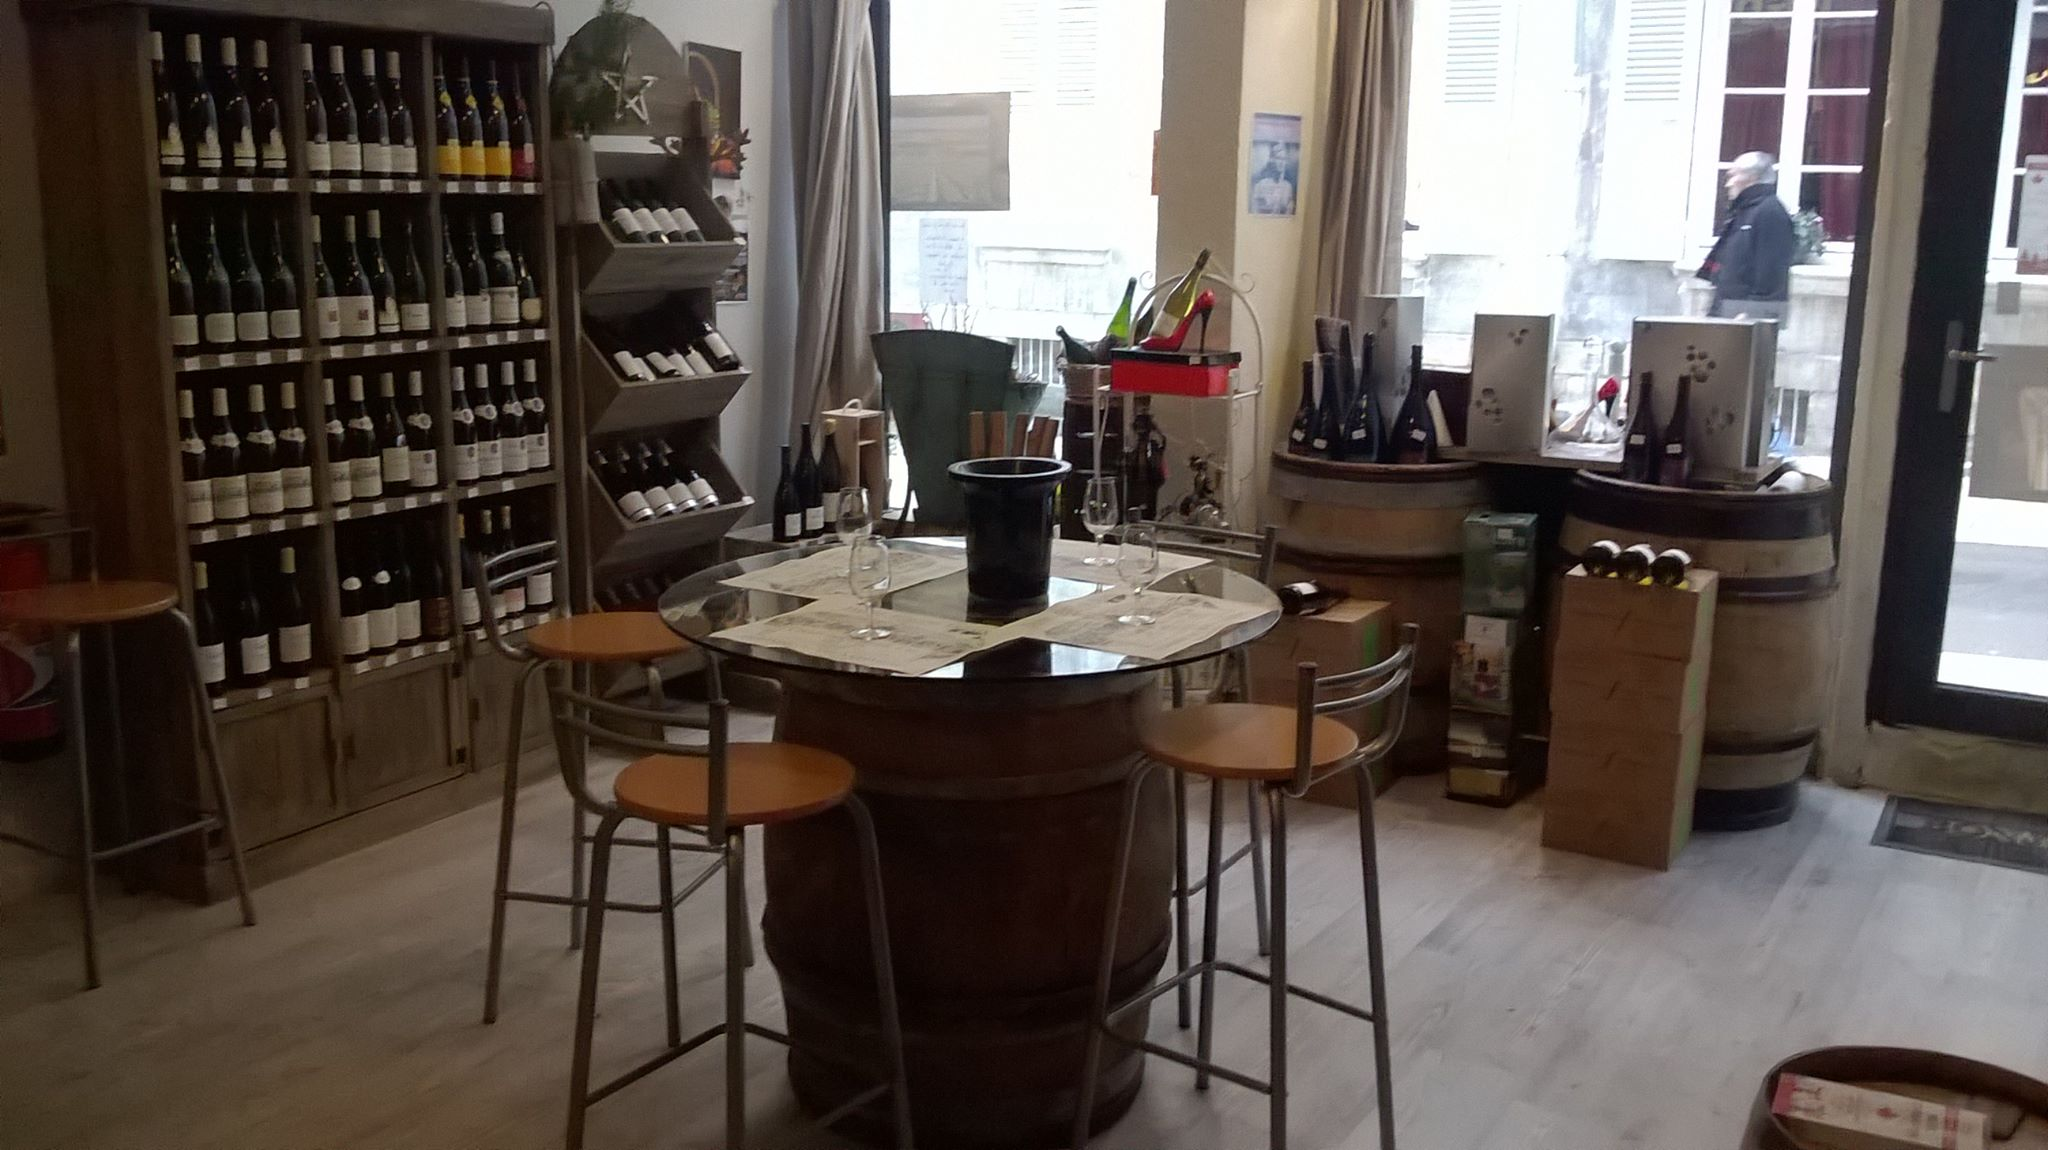 Boutique Le sommelier gourmand interieur